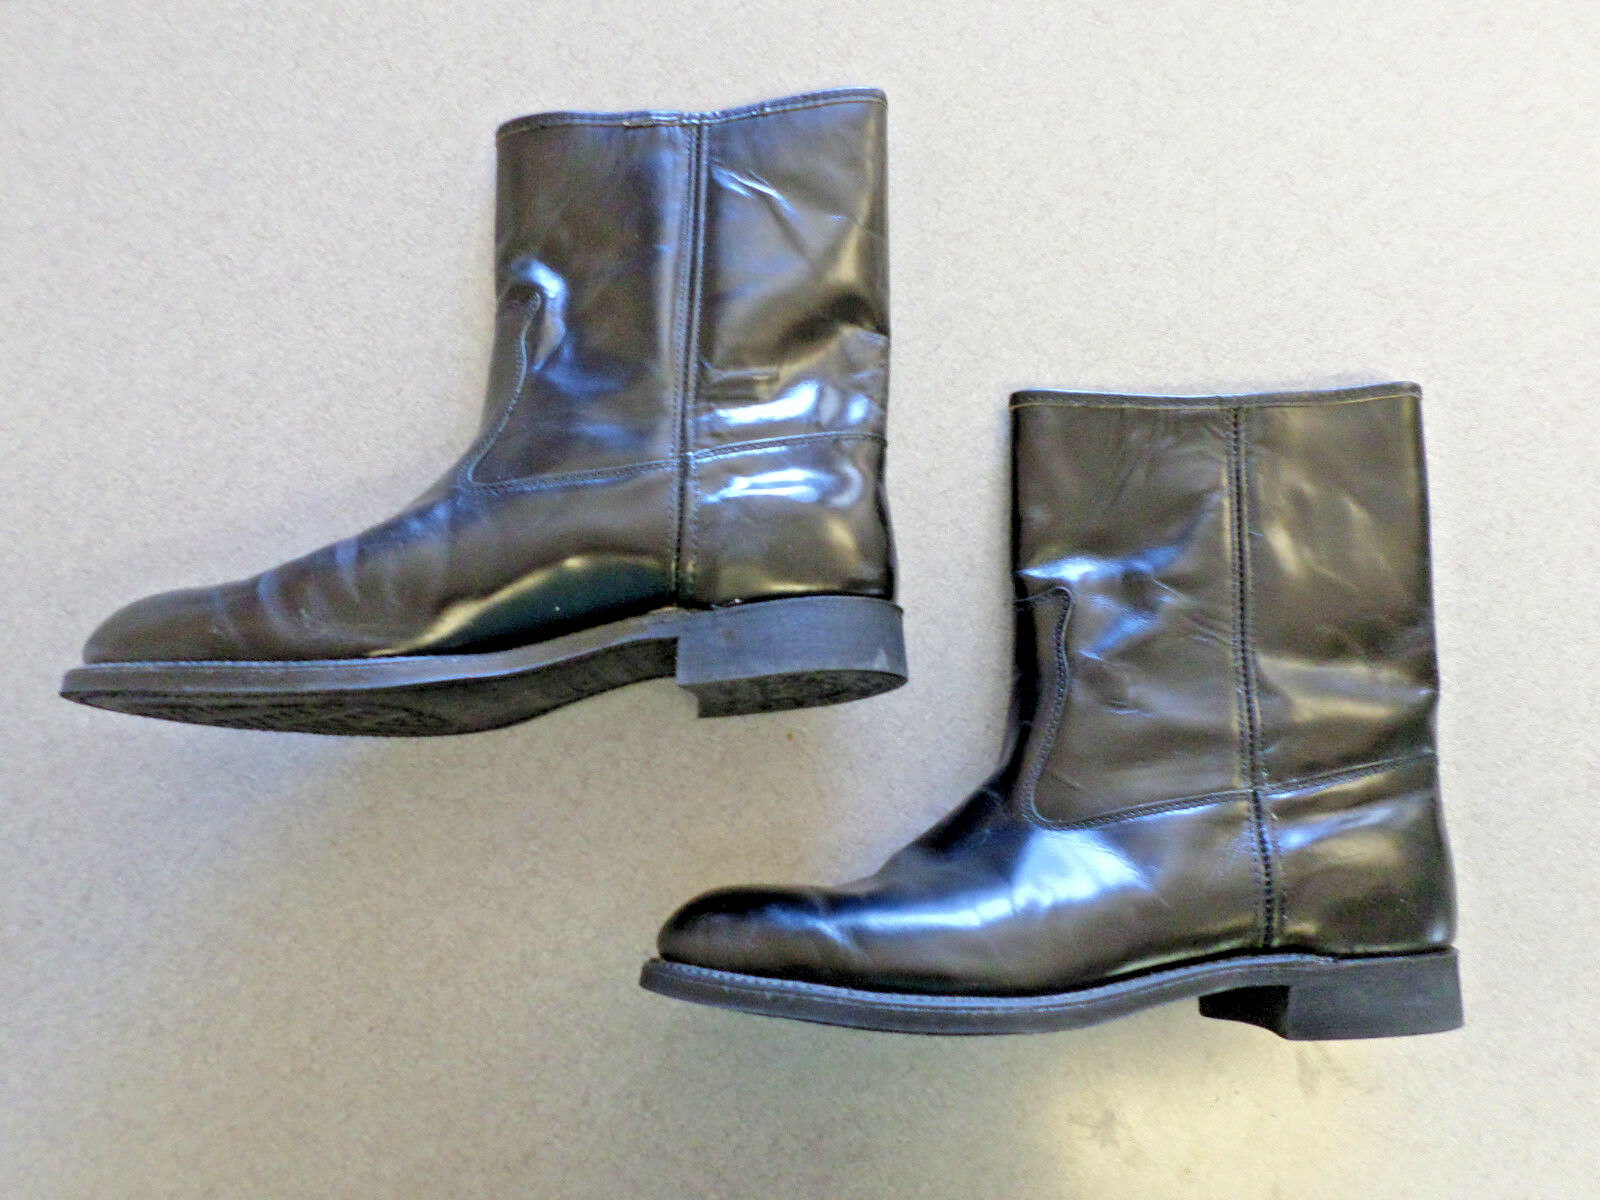 Knapp black leather, 10 in. tall, dress boots, Men's 13 C made in USA